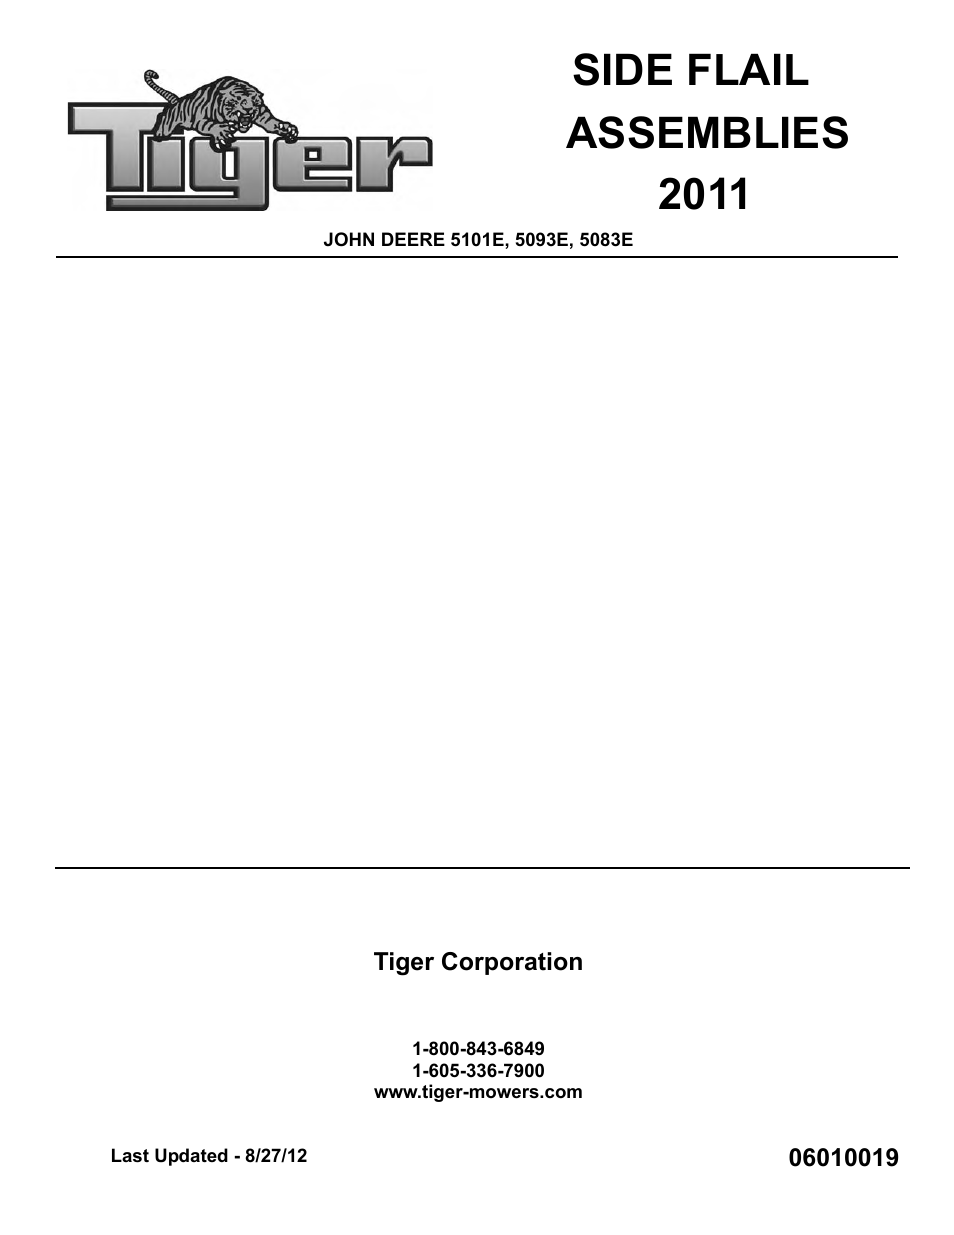 Tiger Products Co., Ltd JOHN DEERE 5101E User Manual | 210 pages | Also  for: JOHN DEERE 5083E